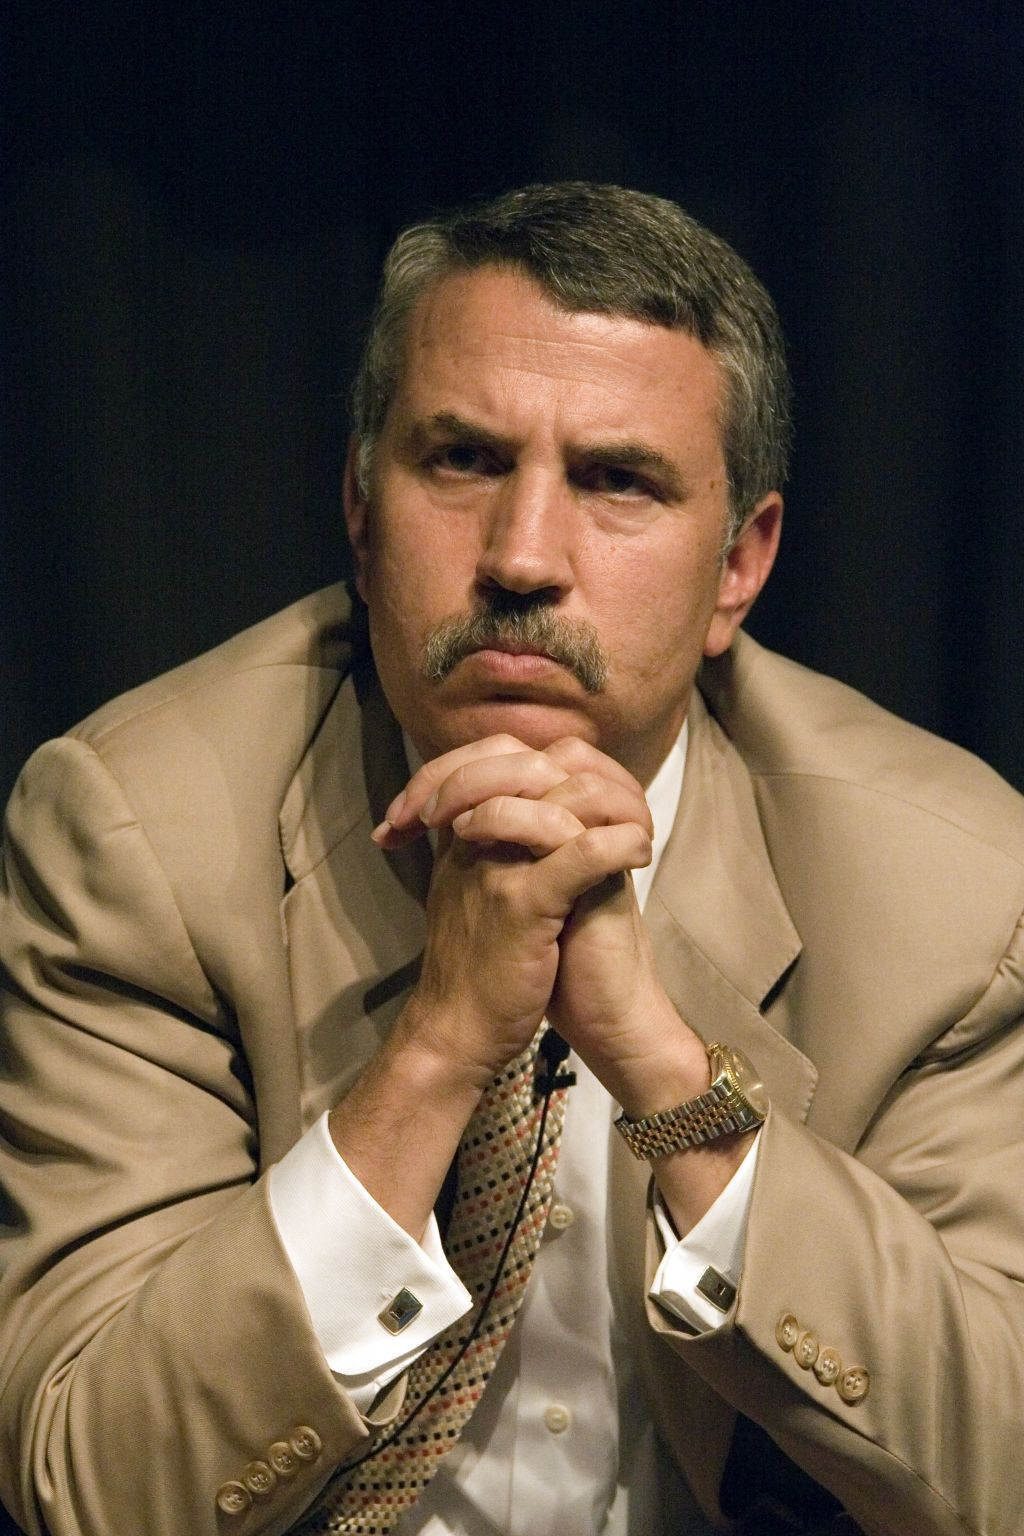 thomas friedman the world is flat Thomas l friedman explains how the flattening of the world happened at the dawn of the twenty-first century book excerpt available here: http://yaleglobal.